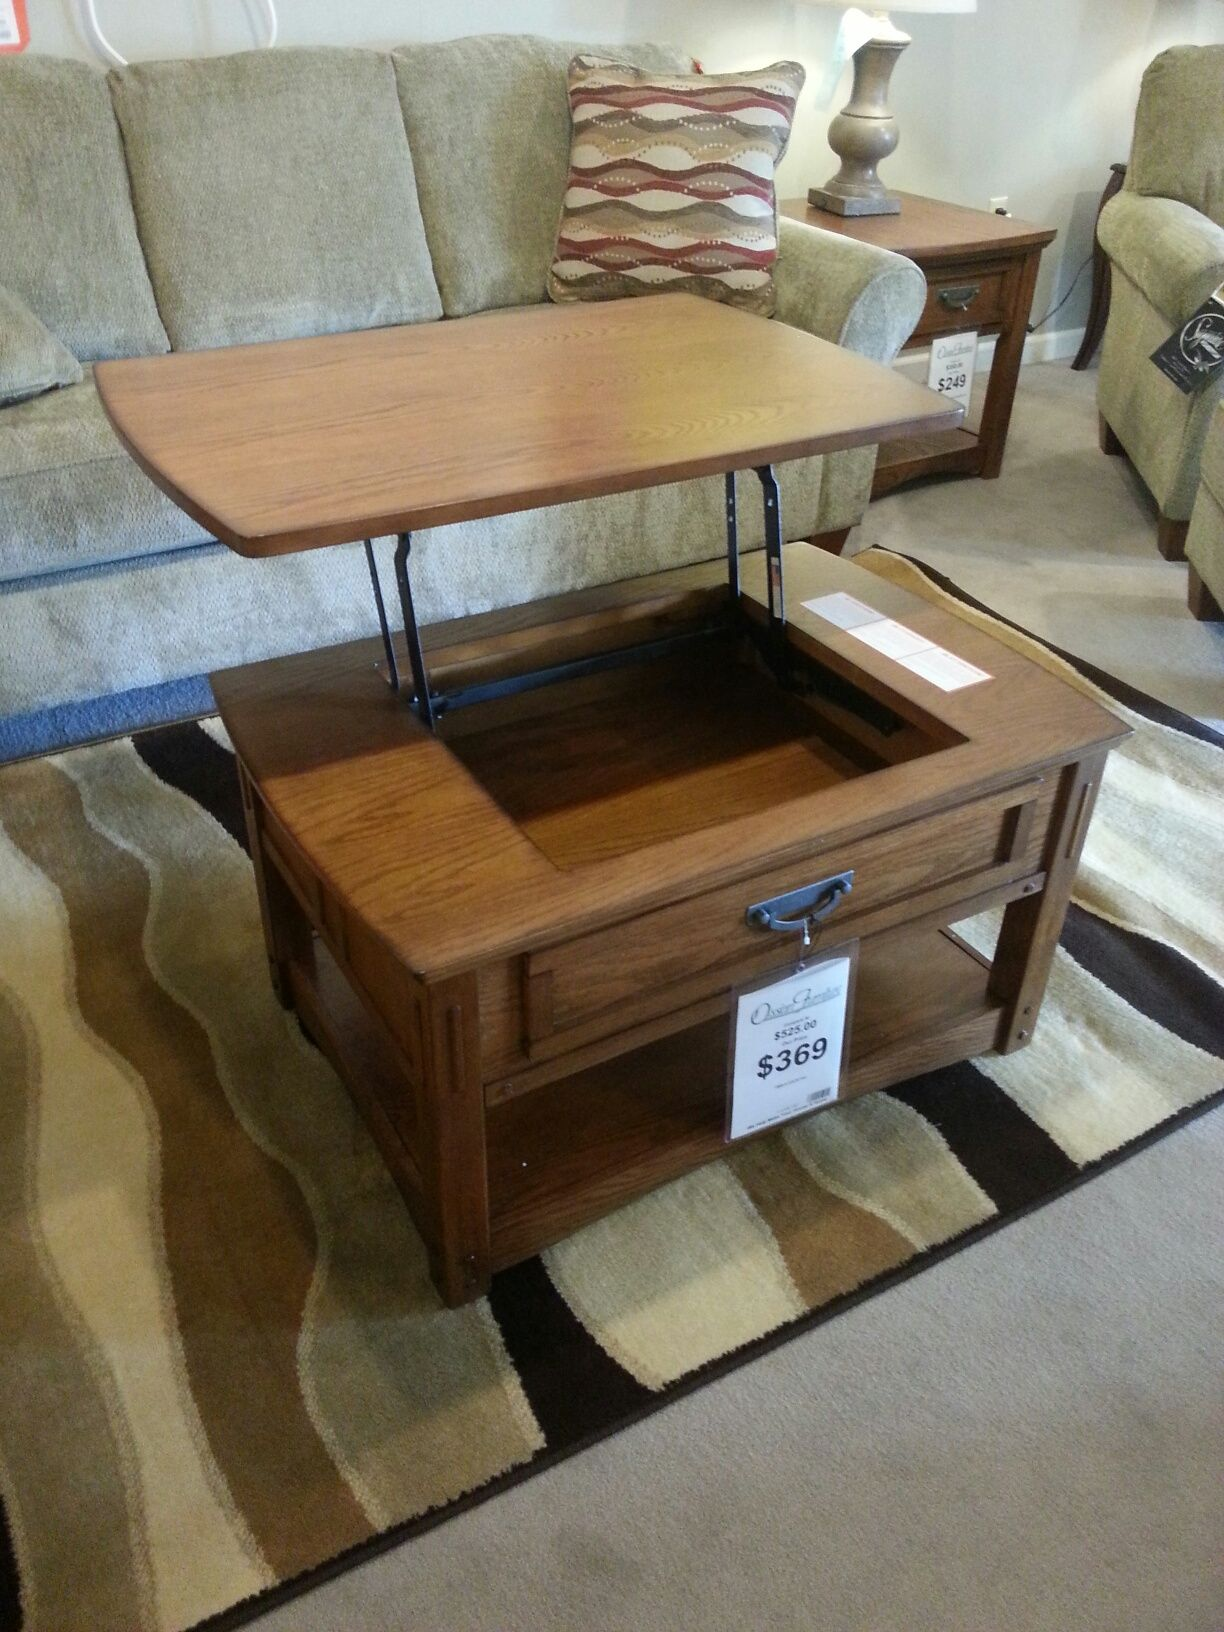 Sofa Arm Tray Table Uk Sfc Coffee Turned Into Tv Dinner Just 369 At